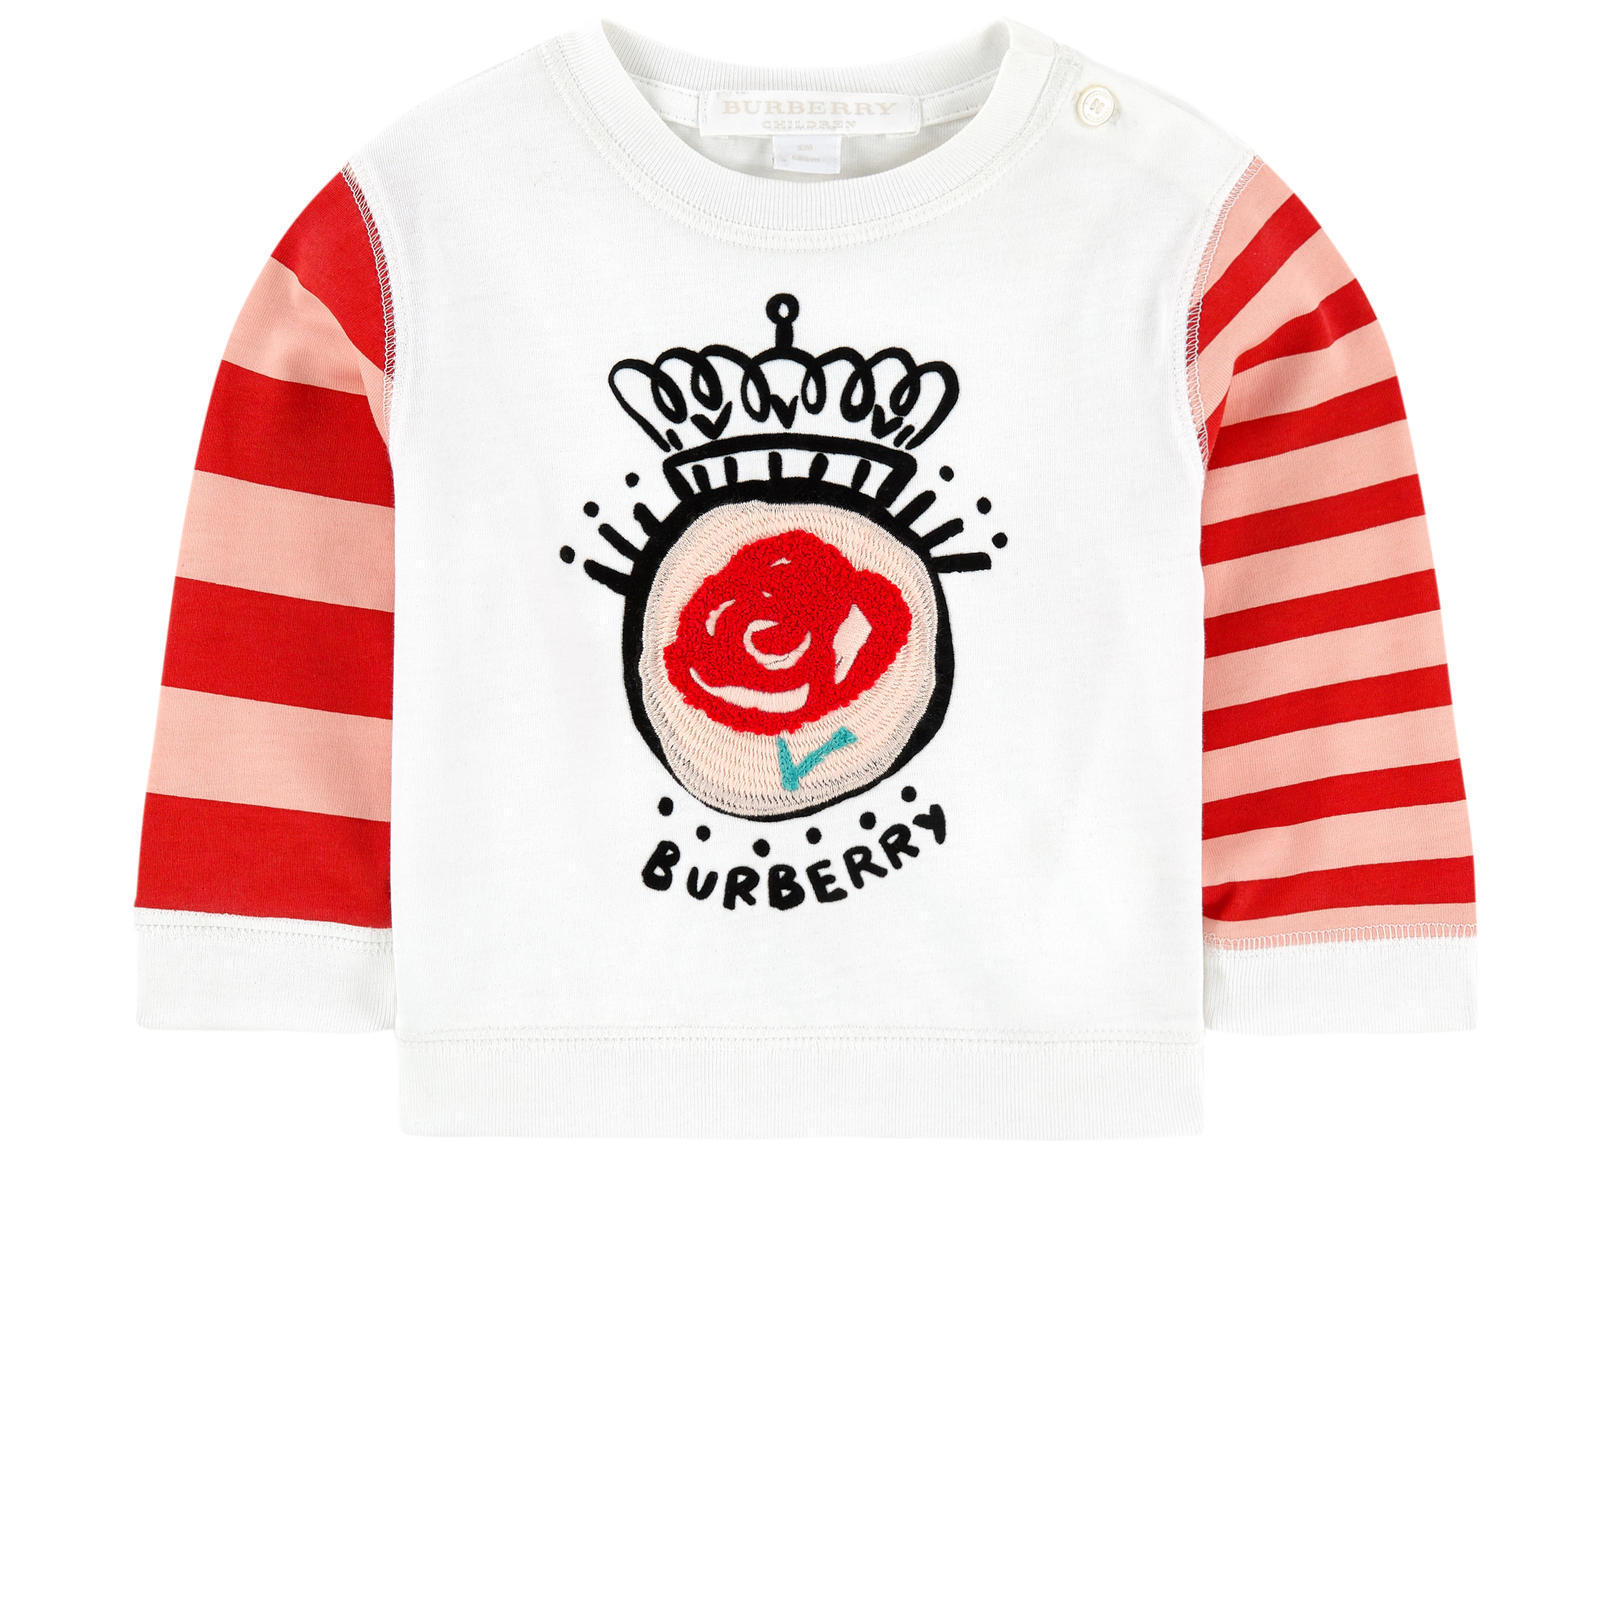 BURBERRY Tシャツ 6M〜36M(3A)